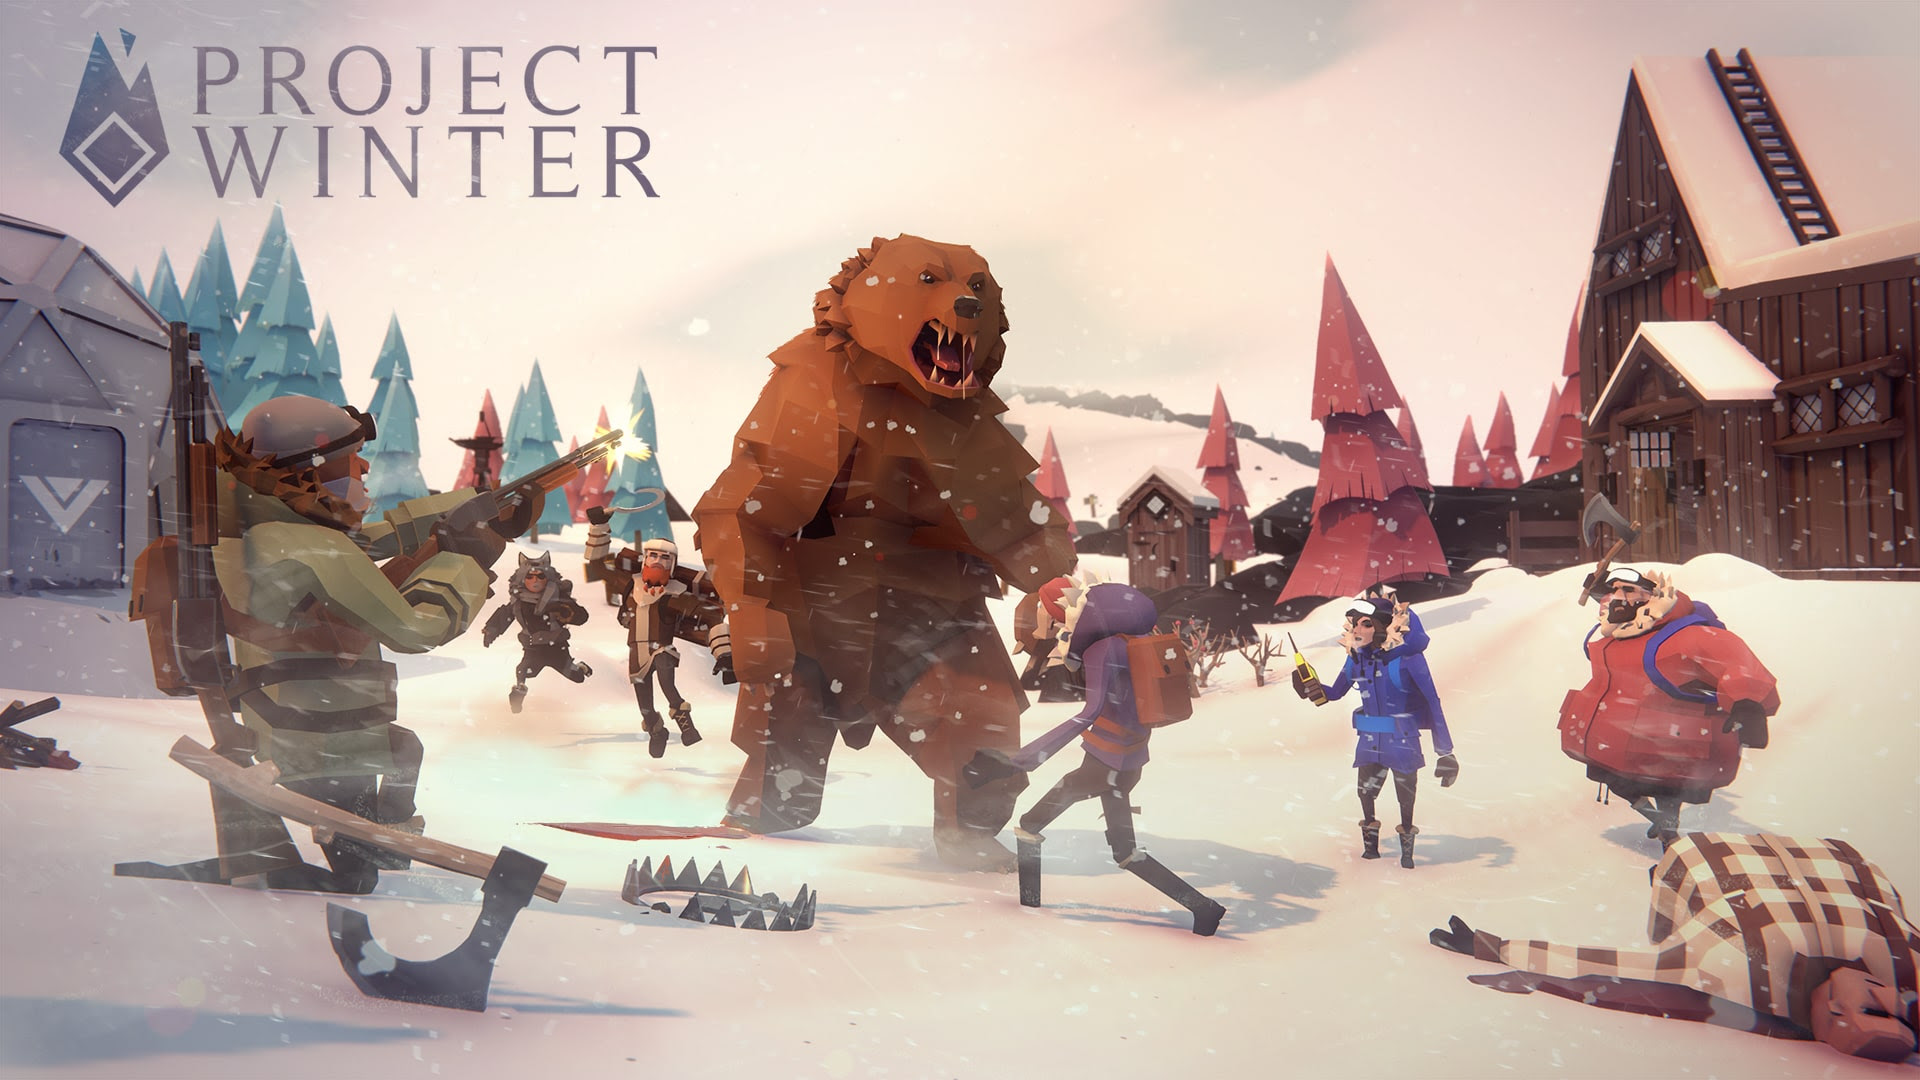 Project Winter is now live on Steam Early Access